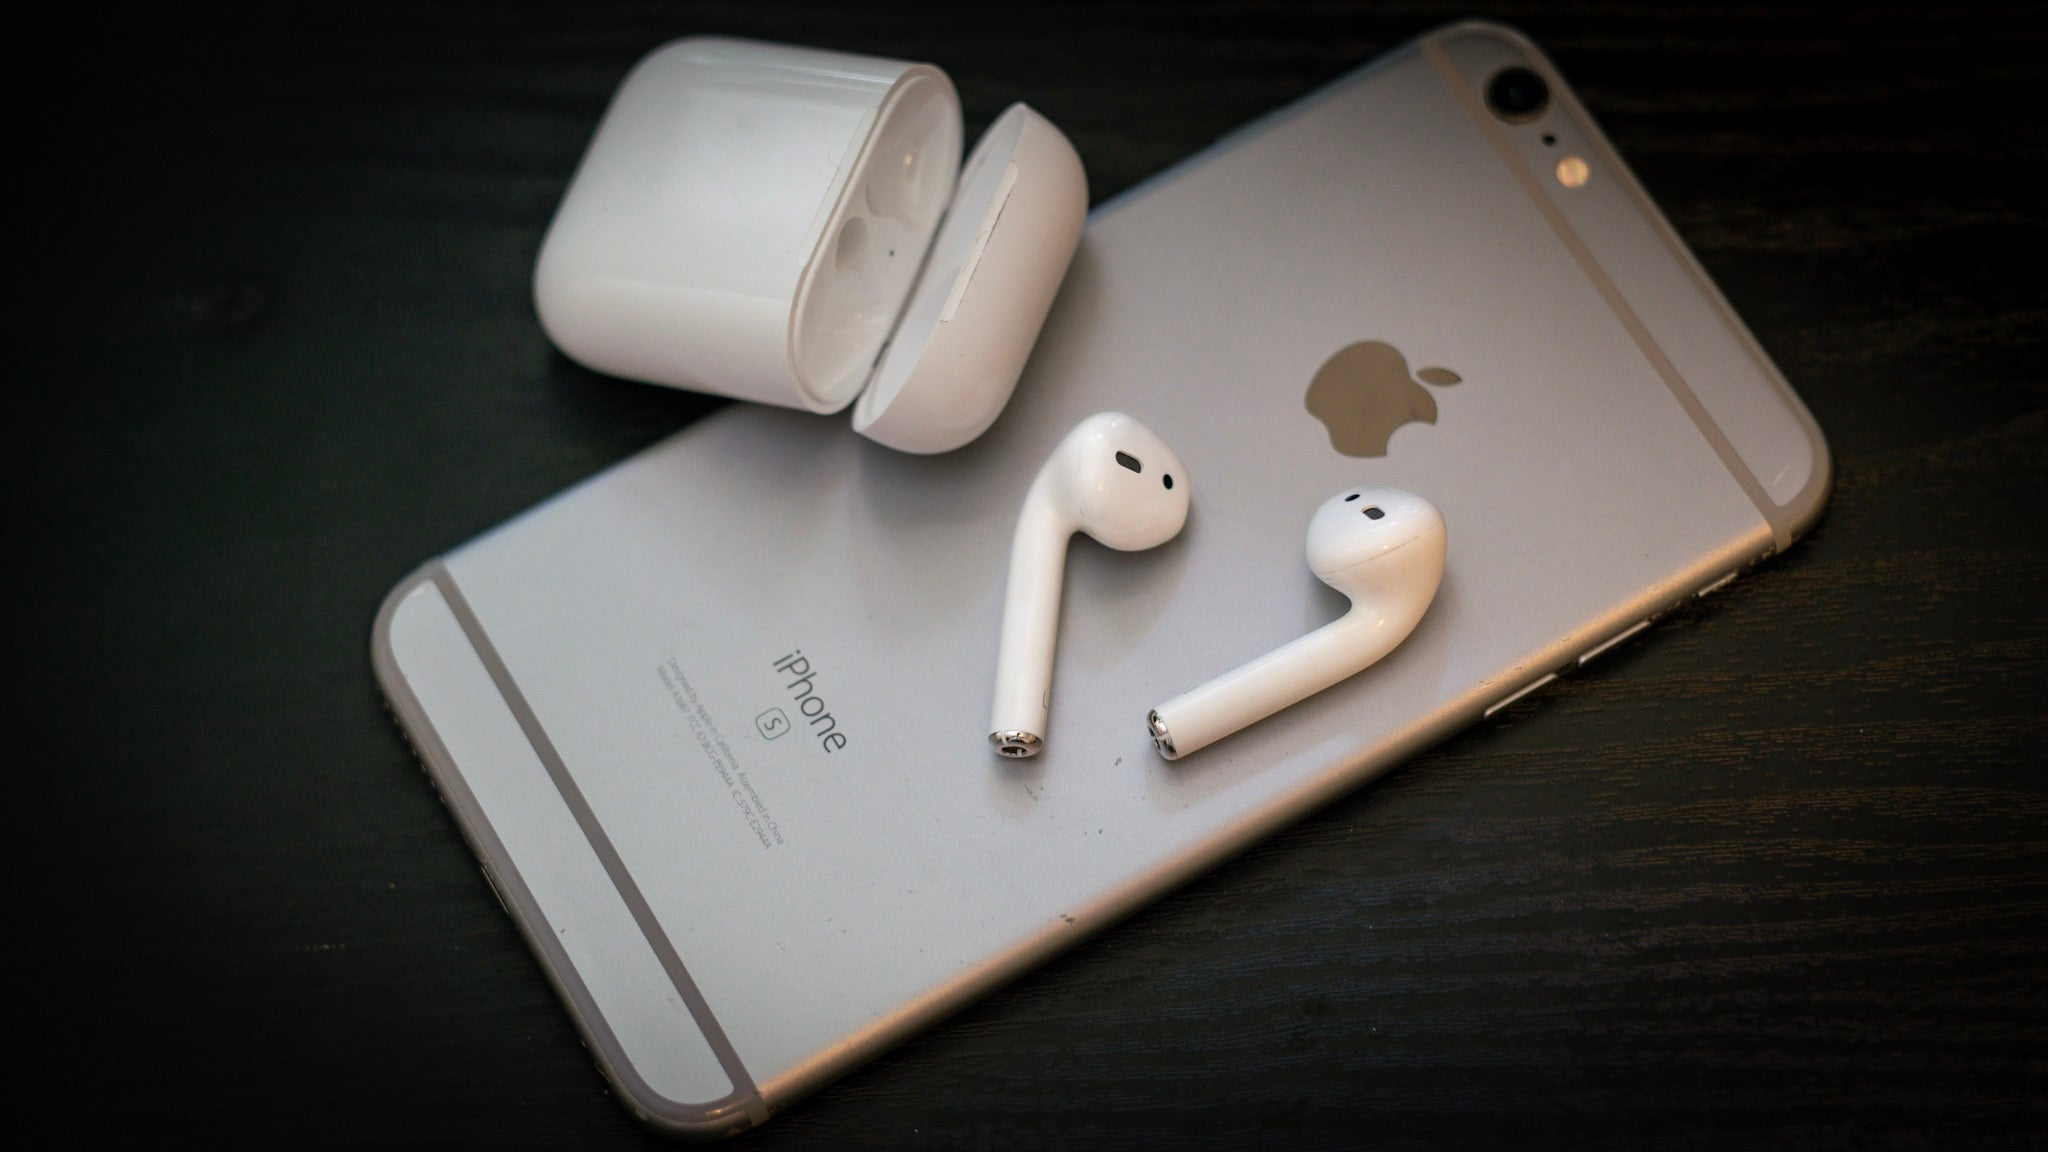 Try These Advanced Tips For Your Apple AirPods